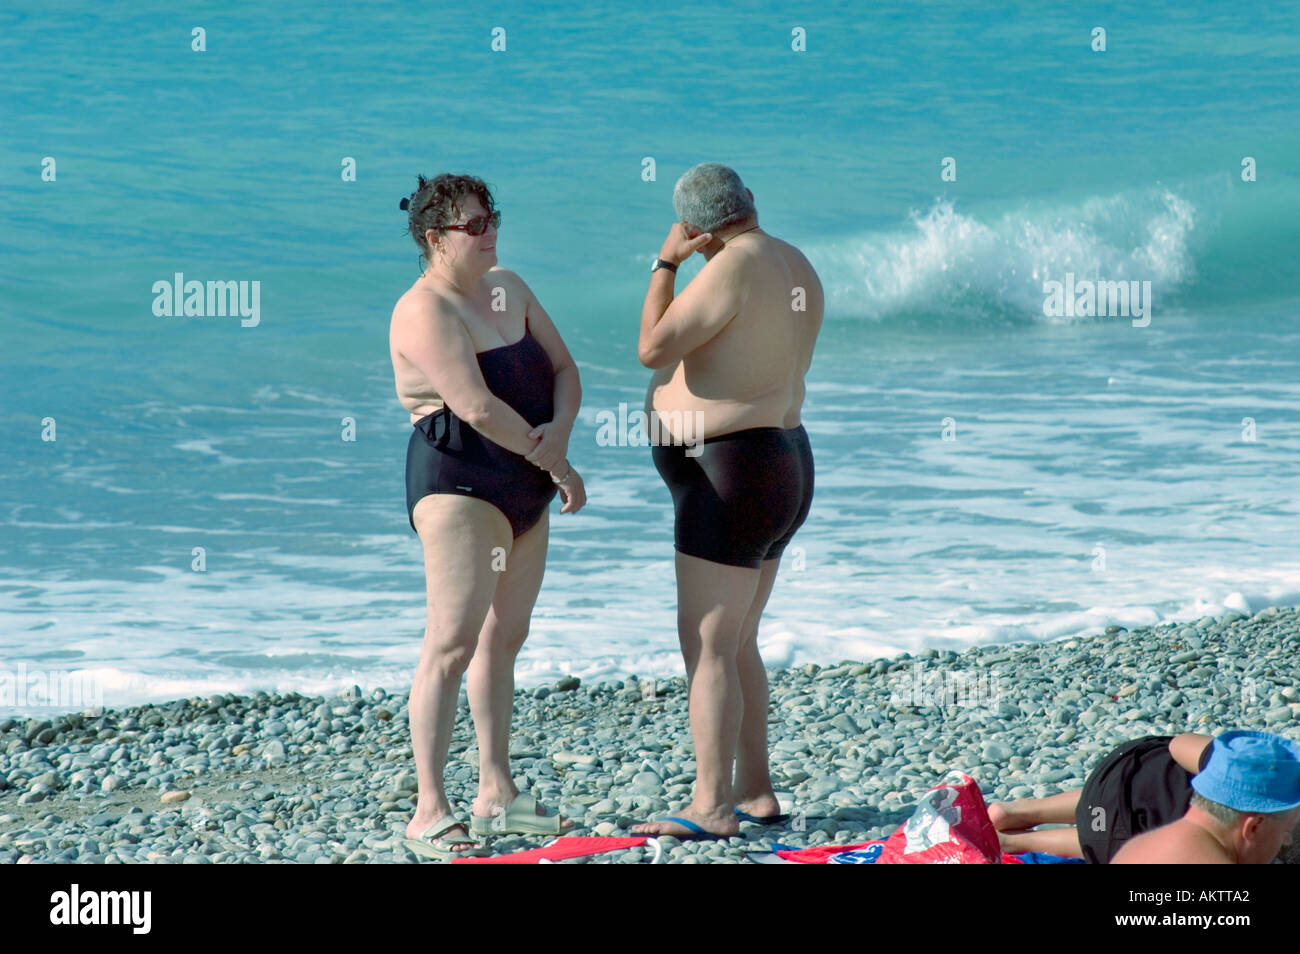 Nice France Beach Scene Mid Adult Overweight Couple Standing